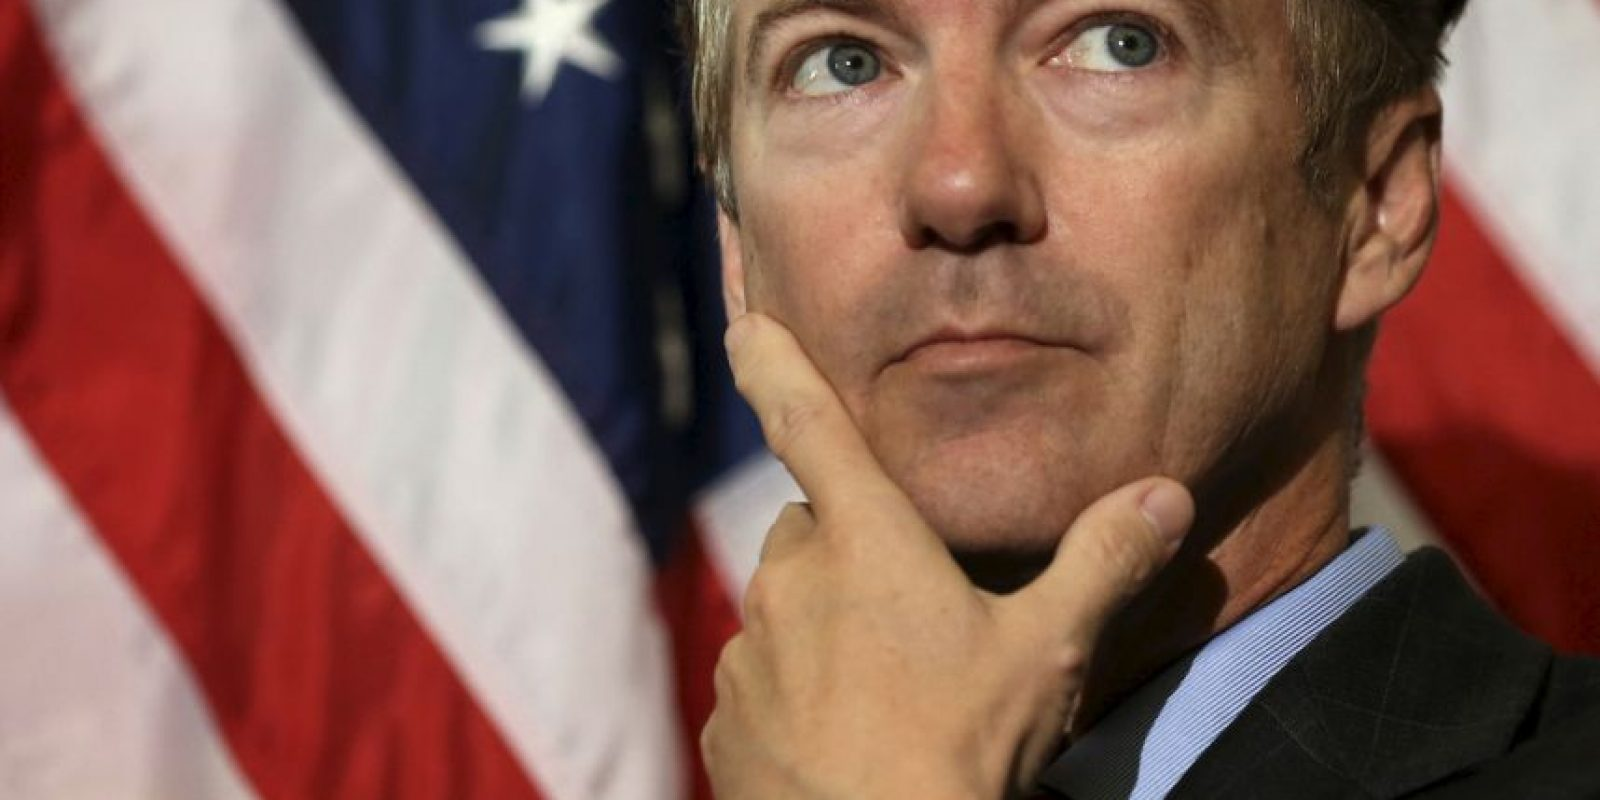 8. Rand Paul Foto: Getty Images